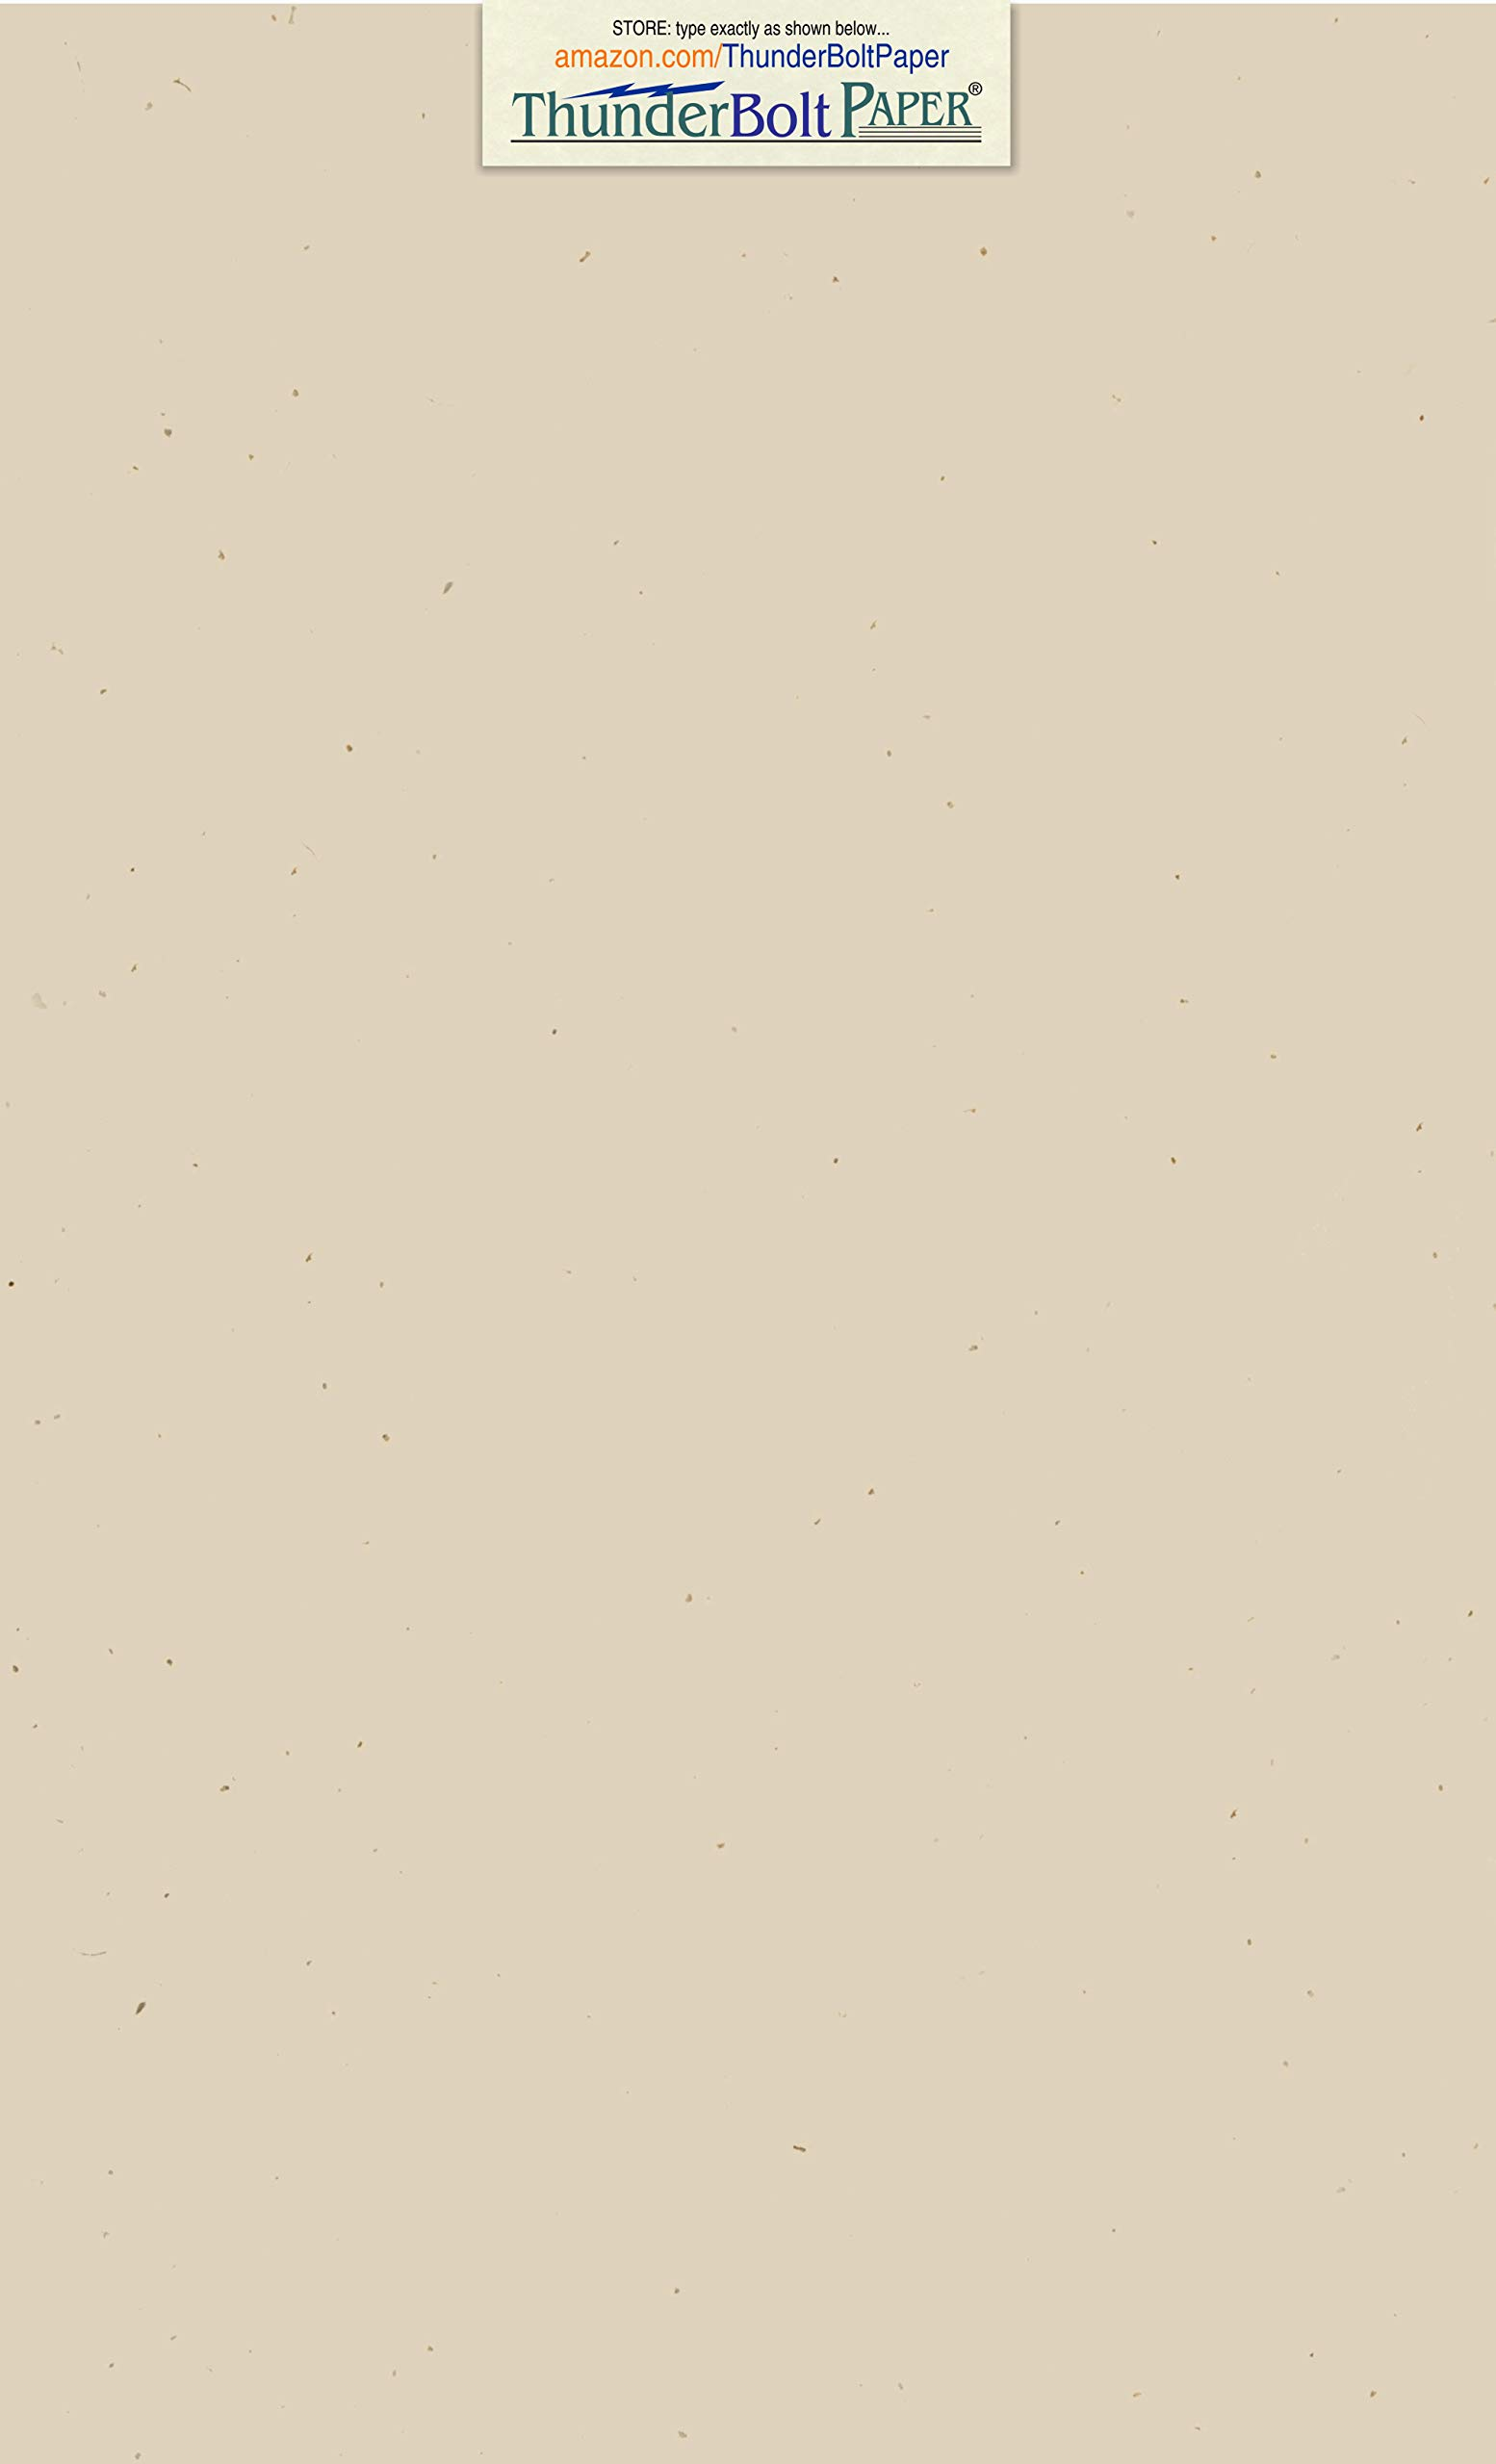 100 Earthy Driftwood Tan Fiber 80# Cover Paper Sheets - 8.5'' X 14'' (8.5X14 Inches) Legal|Menu Size - Light Tan Color with Natural Fibers - Smooth Finish